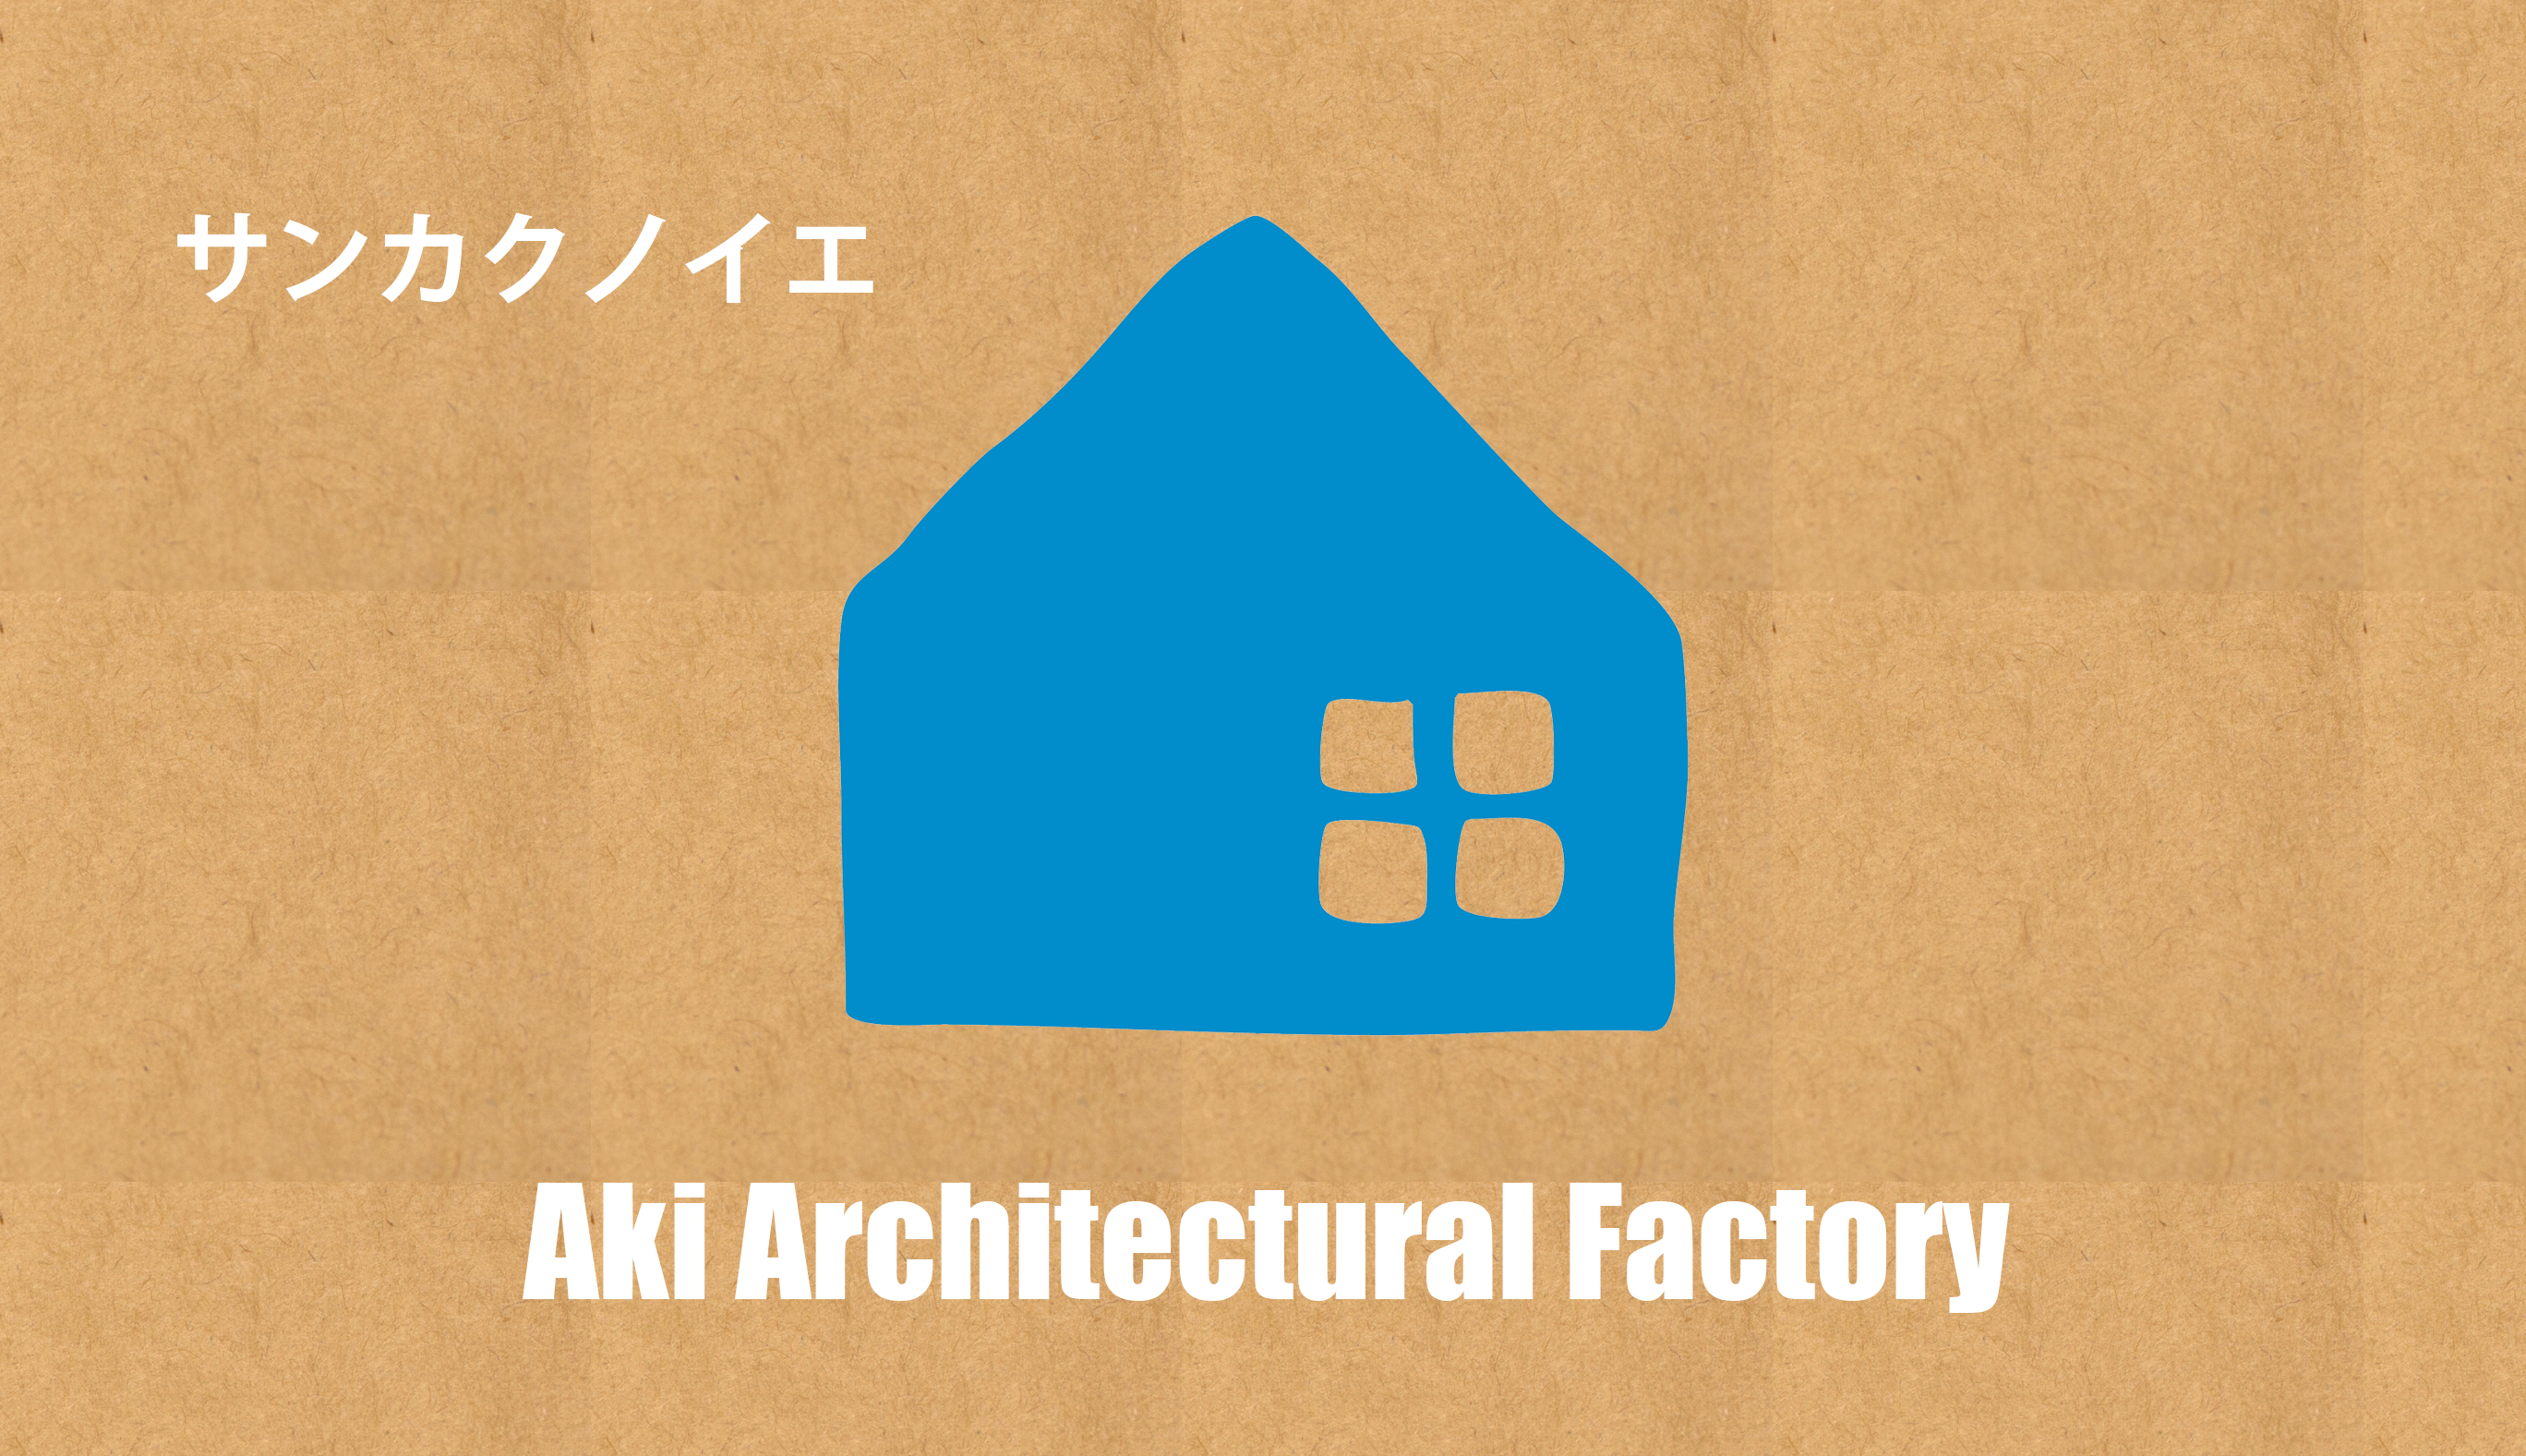 Aki Architectural Factory 昭設計